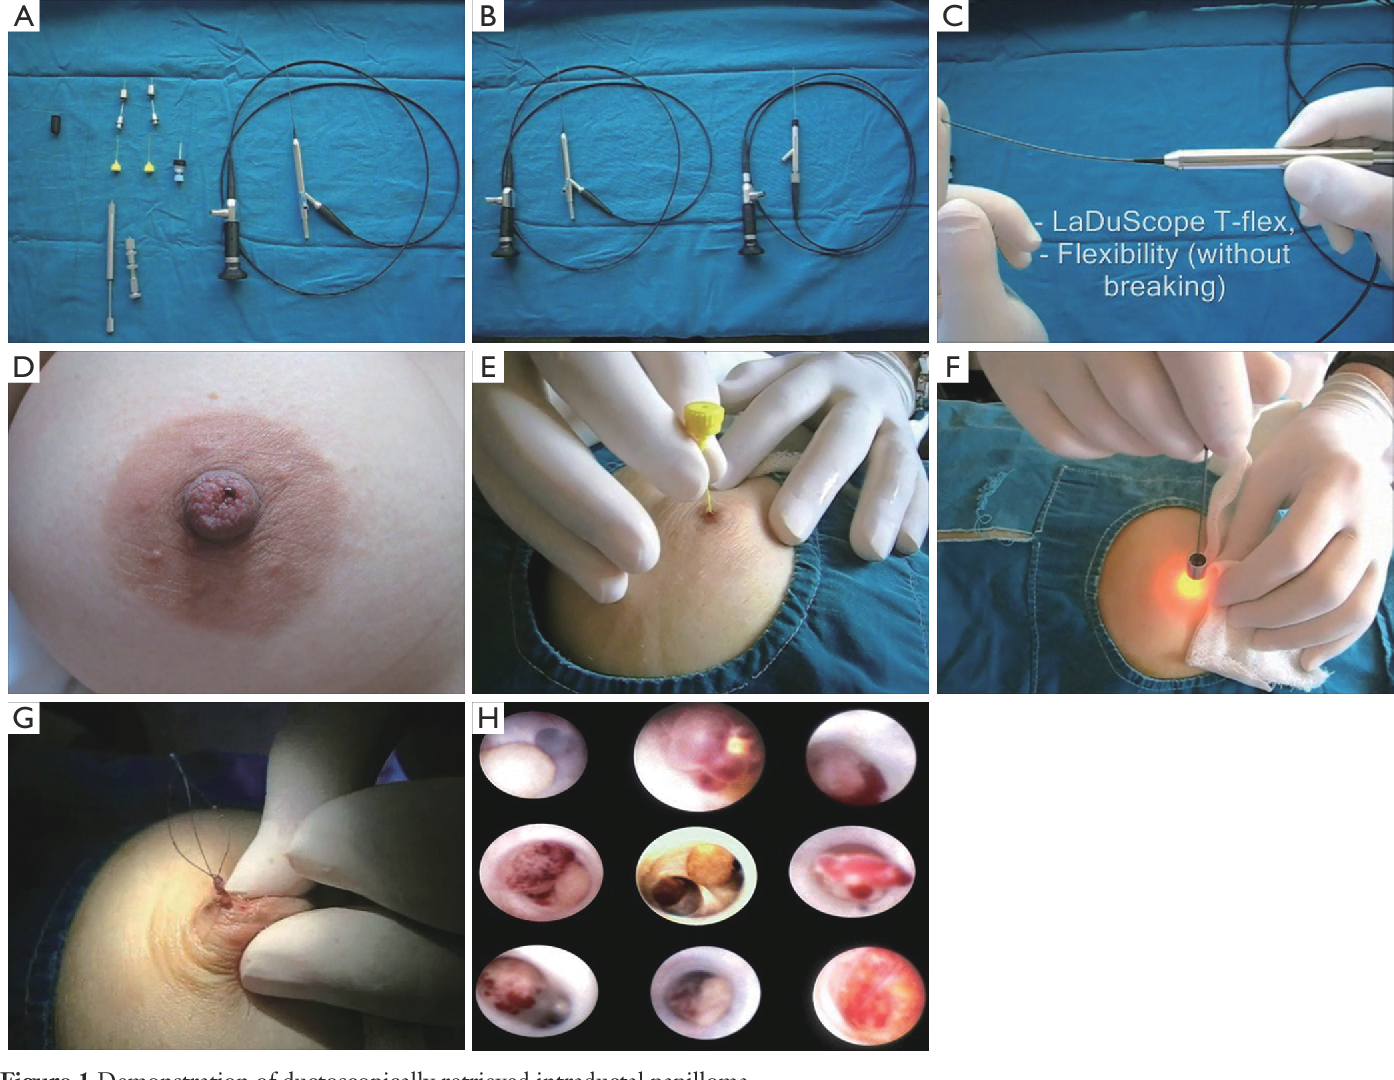 intraductal papilloma causes